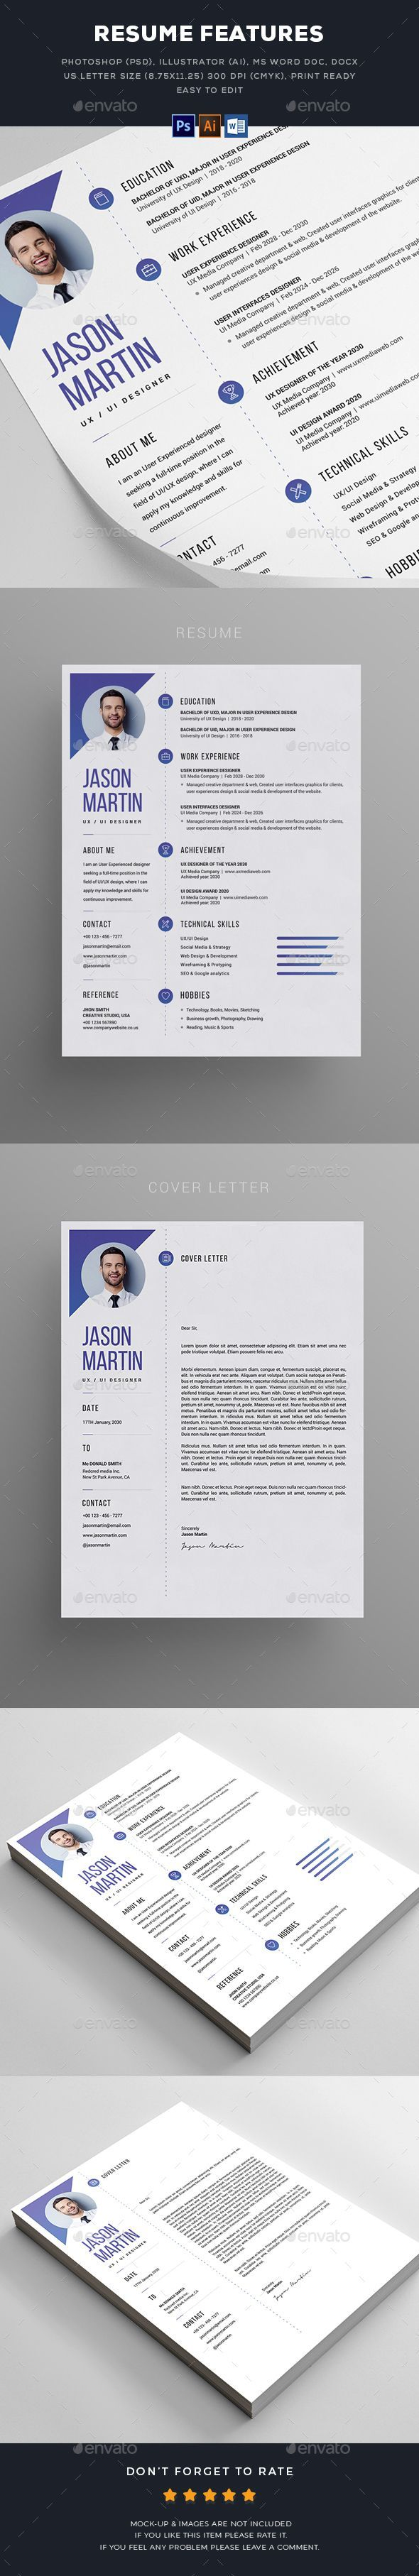 federal resume examples it specialist%0A  Resume  Resumes Stationery Download here  https   graphicriver net